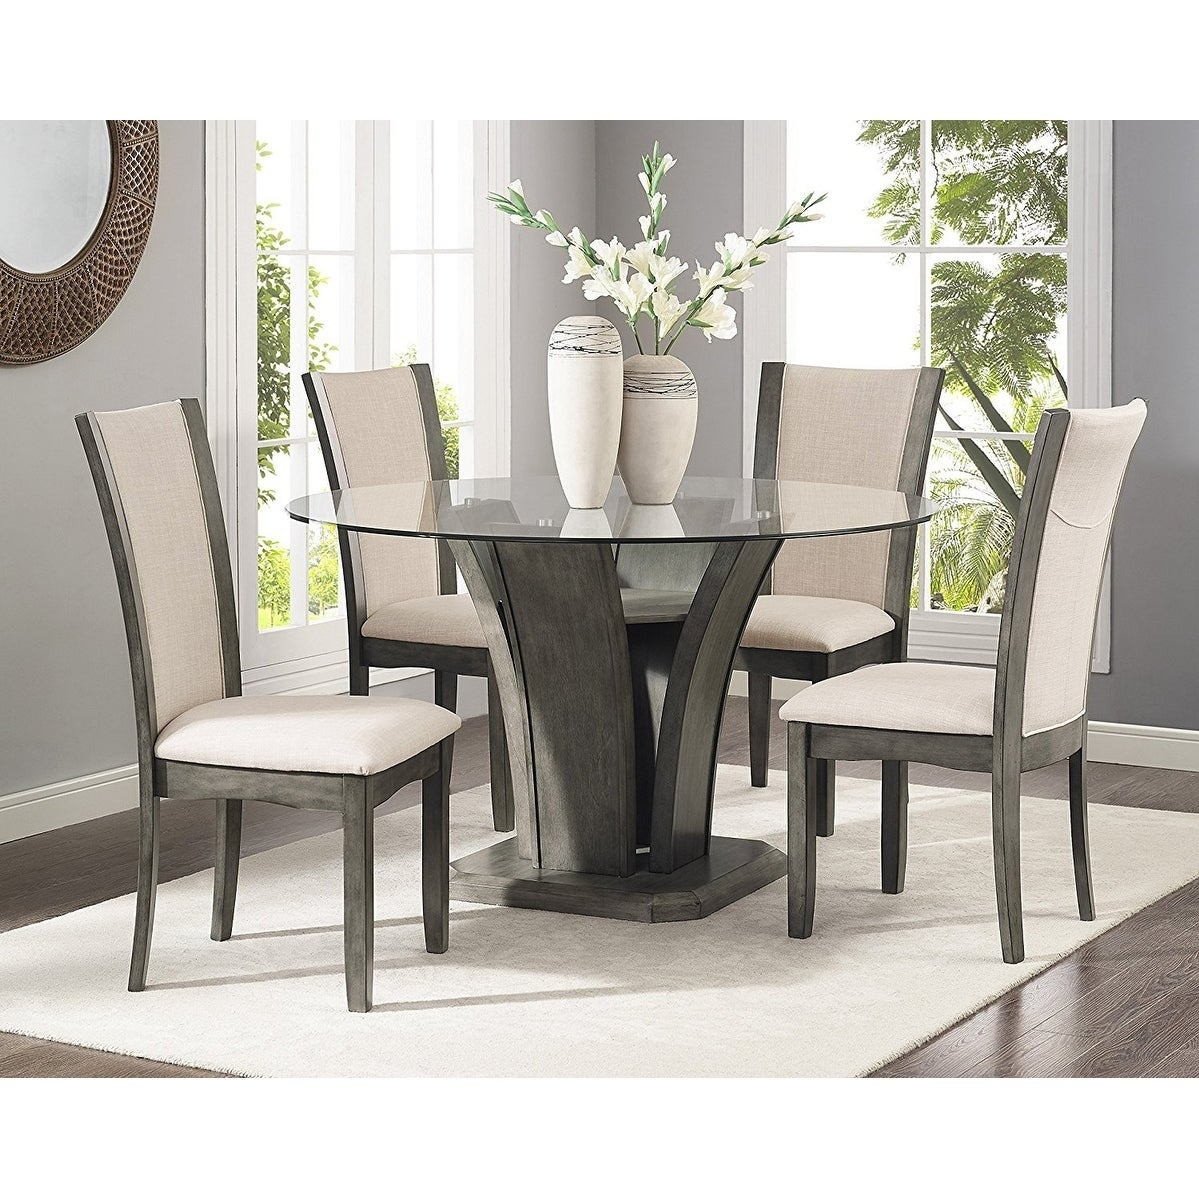 Dining Glass Table Set: Kecco Grey 5-Piece Glass Top Dining Set, Table With 4